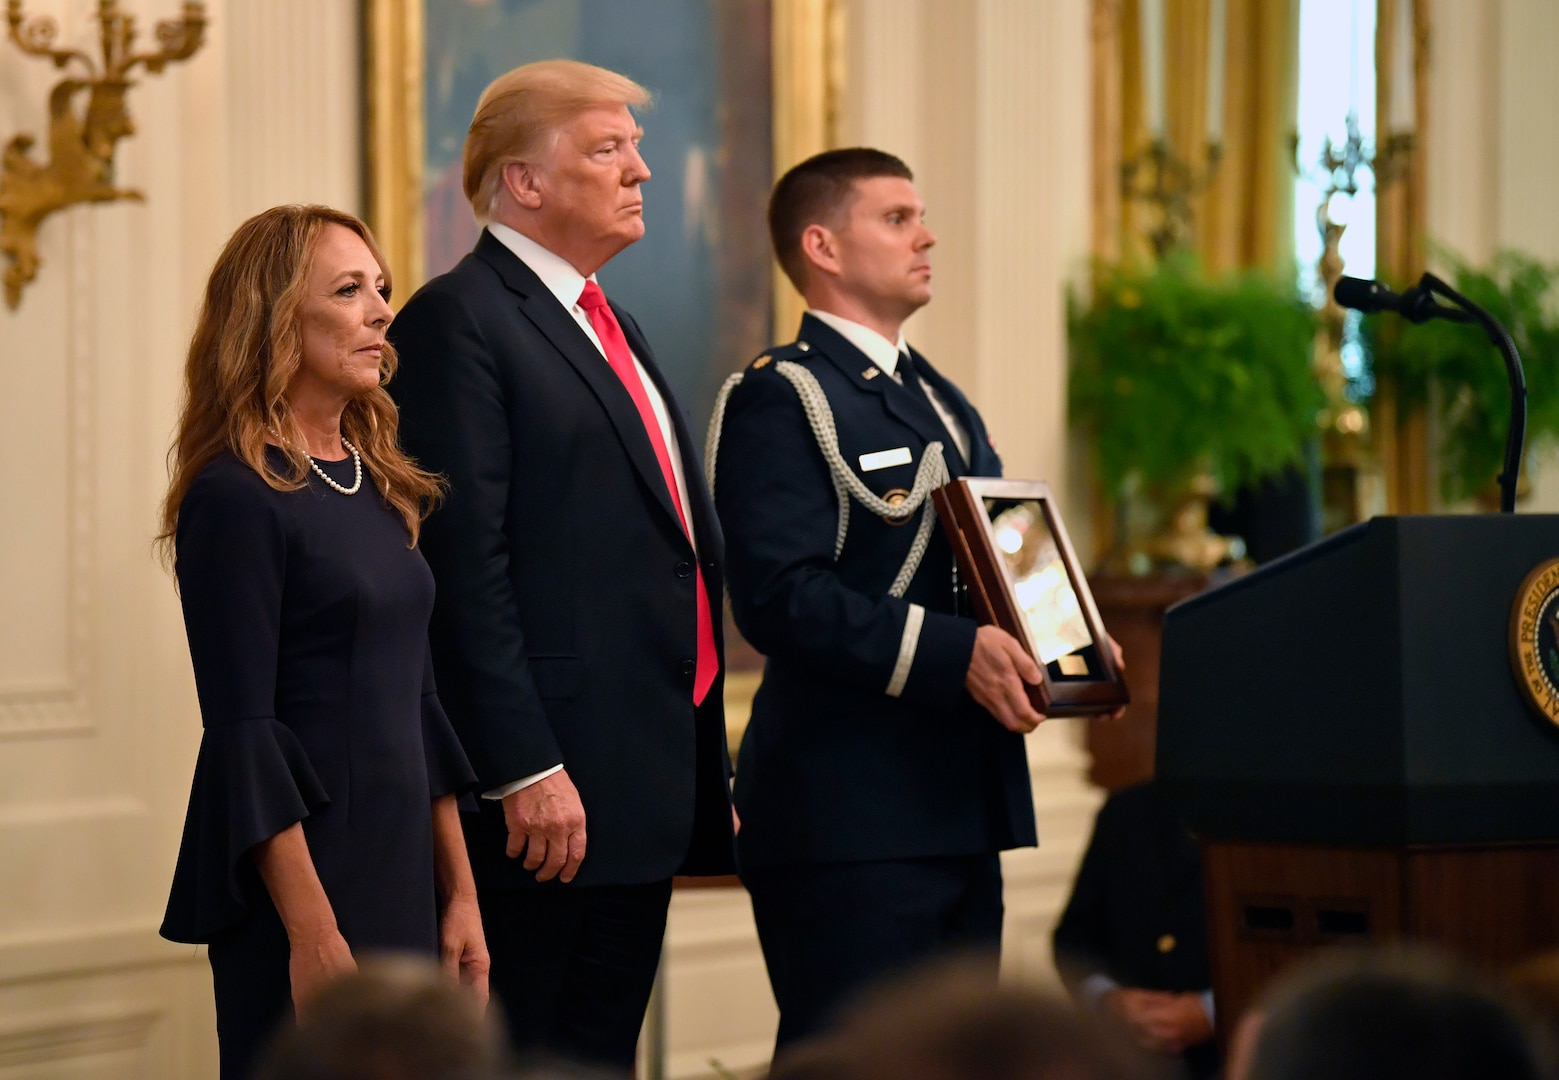 Valerie Nessel, the spouse of Tech. Sgt. John Chapman, stands as the citation is read before receiving the Medal of Honor from President Donald J. Trump during a ceremony at the White House in Washington, D.C., Aug. 22, 2018. Chapman was posthumously awarded the Medal of Honor for actions on Takur Ghar mountain in Afghanistan on March 4, 2002, when his elite special operations team was ambushed by the enemy and came under heavy fire from multiple directions. Chapman immediately charged an enemy bunker through thigh-deep snow and killed all enemy occupants. Courageously moving from cover to assault a second machine gun bunker, he was injured by enemy fire. Despite severe wounds, he fought relentlessly, sustaining a violent engagement with multiple enemy personnel before making the ultimate sacrifice. With his last actions, he saved the lives of his teammates. (U.S. Air Force photo by Wayne A. Clark)